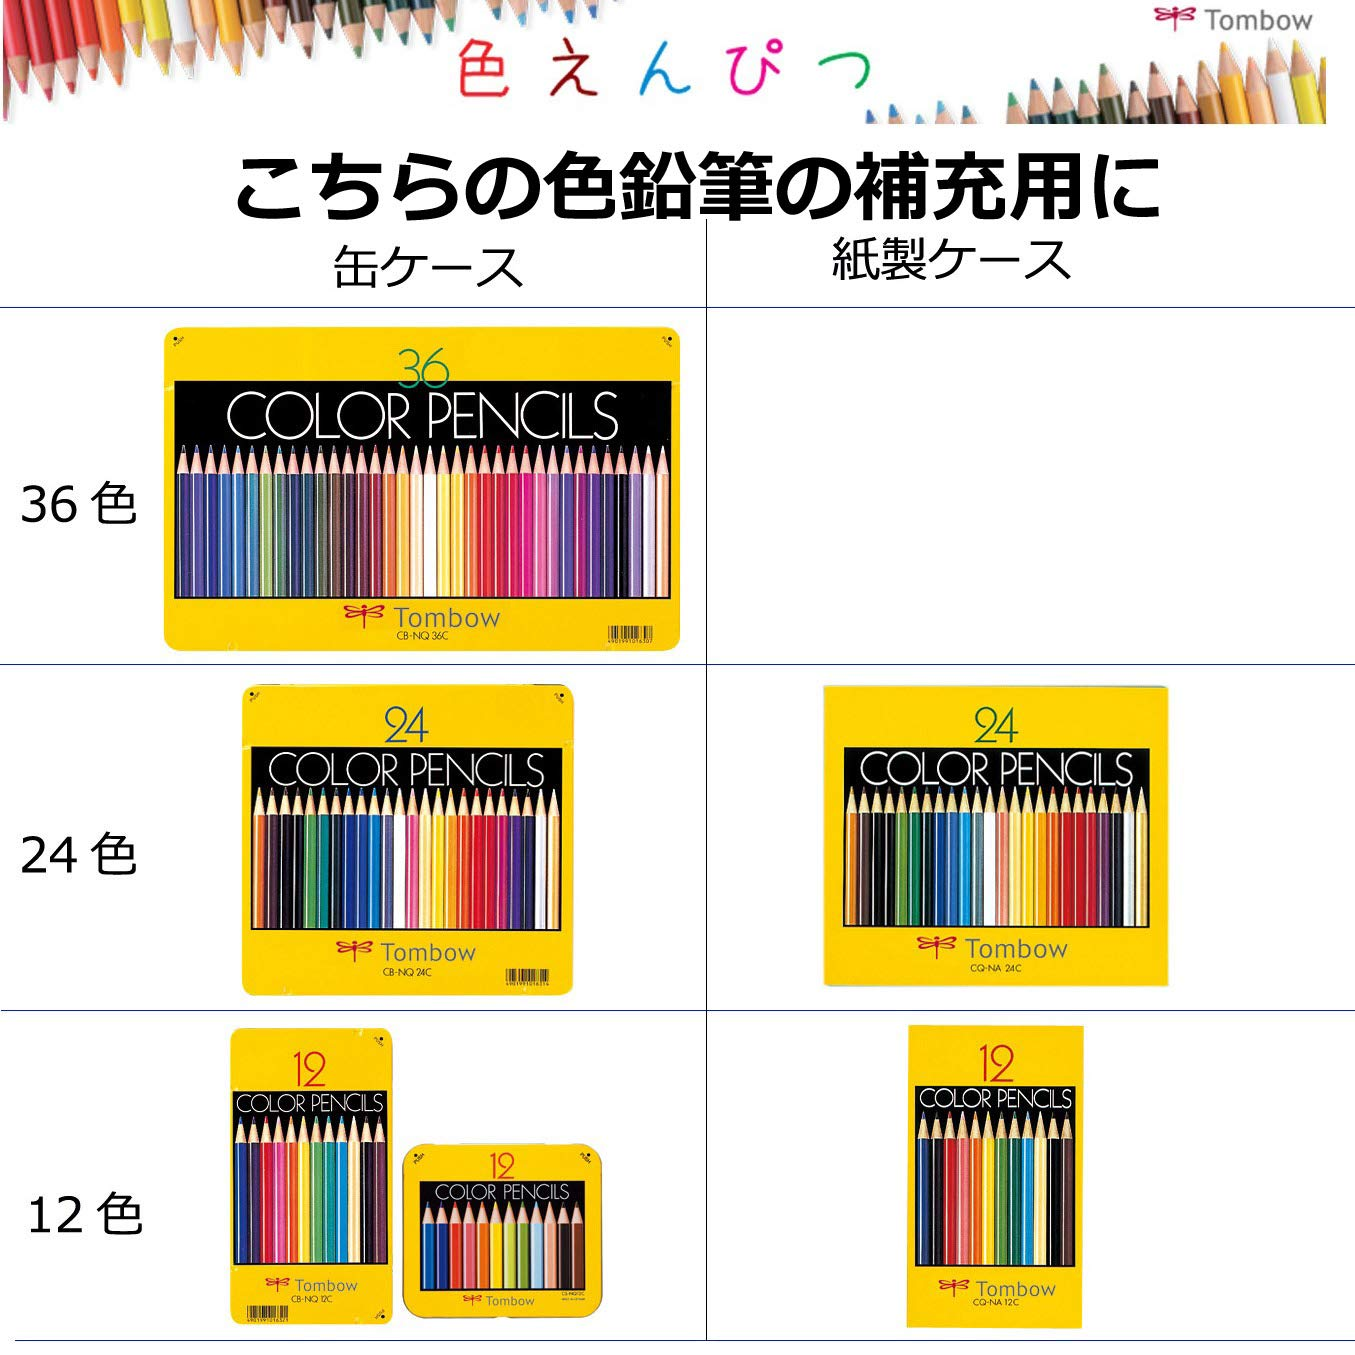 Tombow Colored Pencil 1500 Monochromatic Gold Japan Import